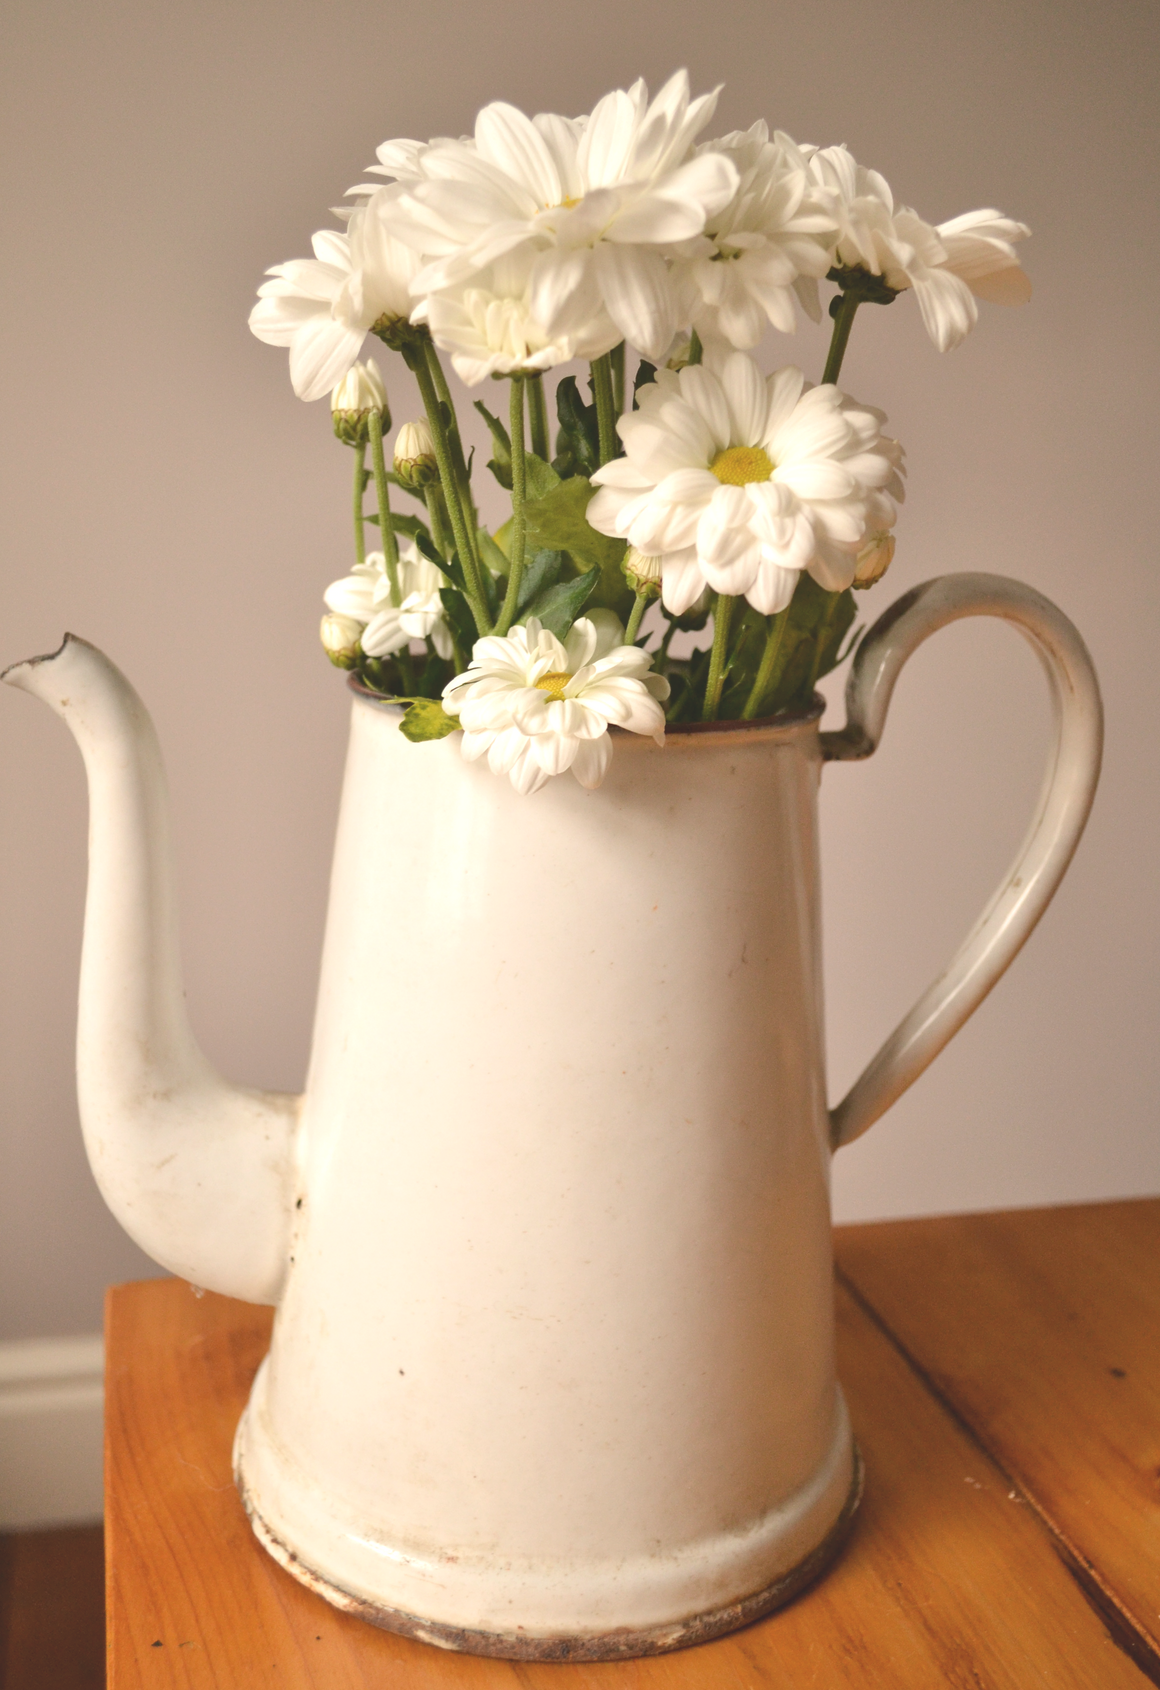 White Enamel Milk Jug